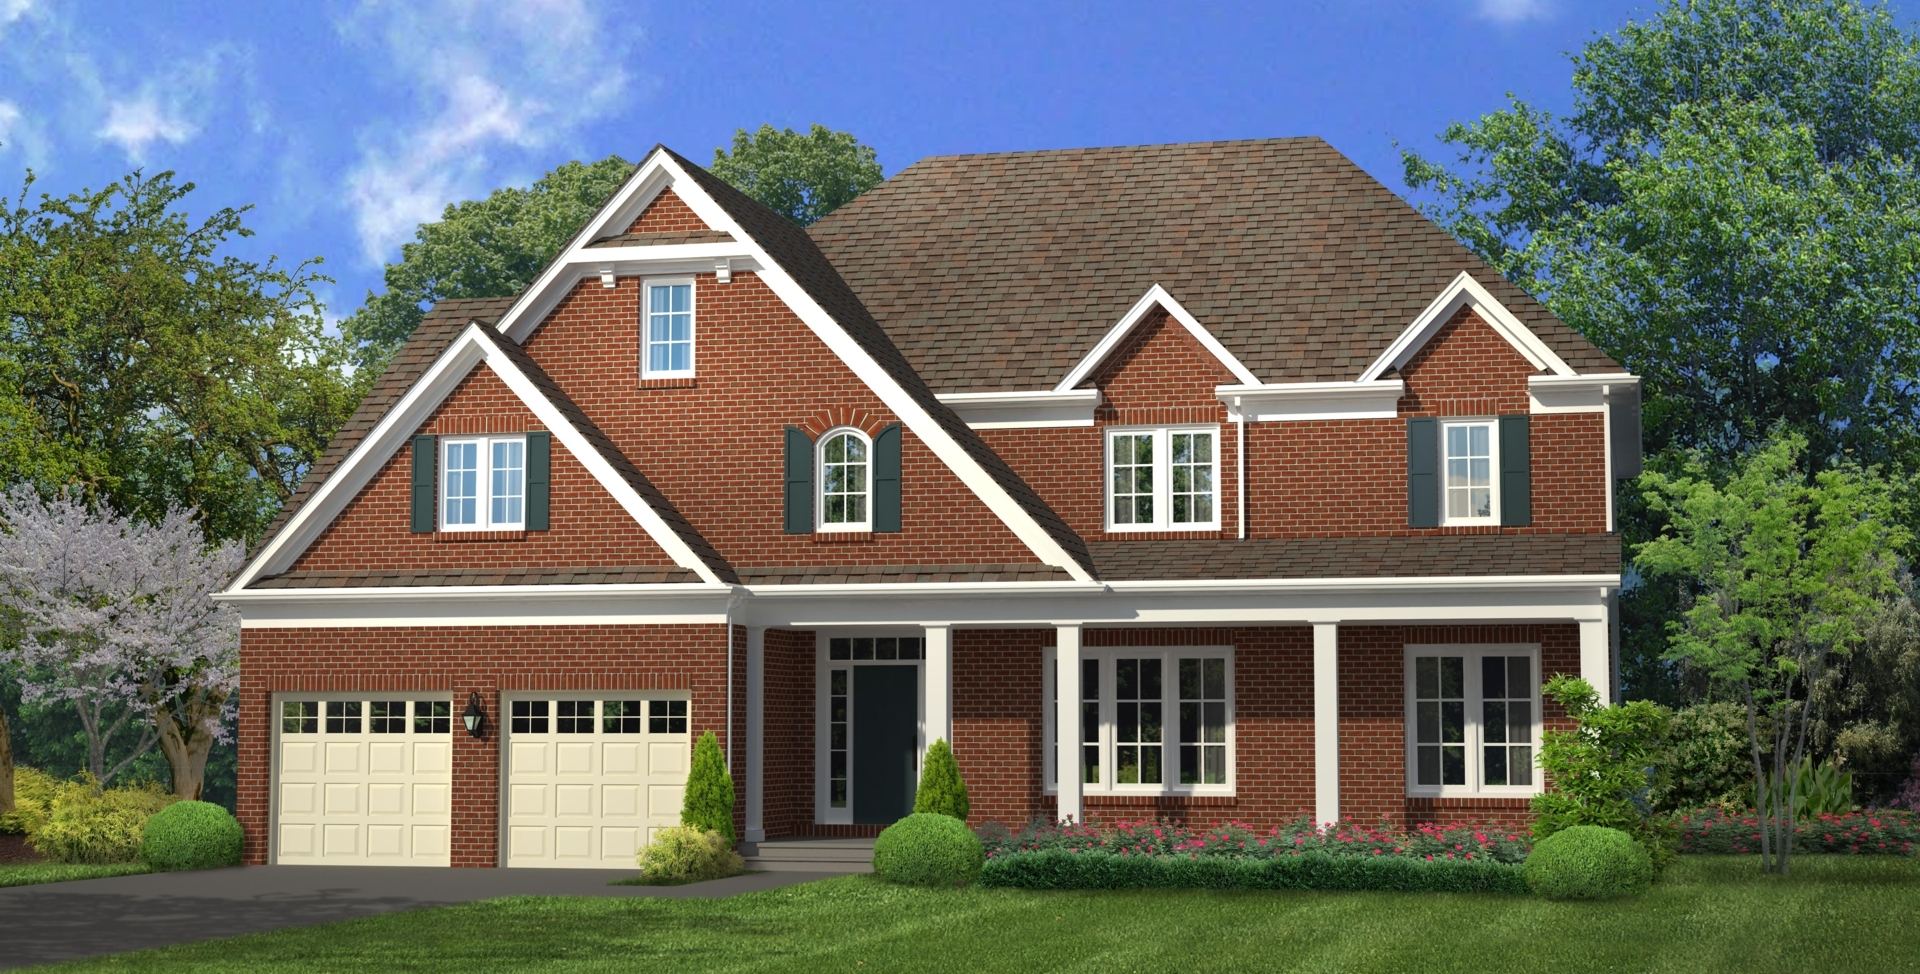 New homes for sale in loudoun county mid atlantic for Mid atlantic home builders